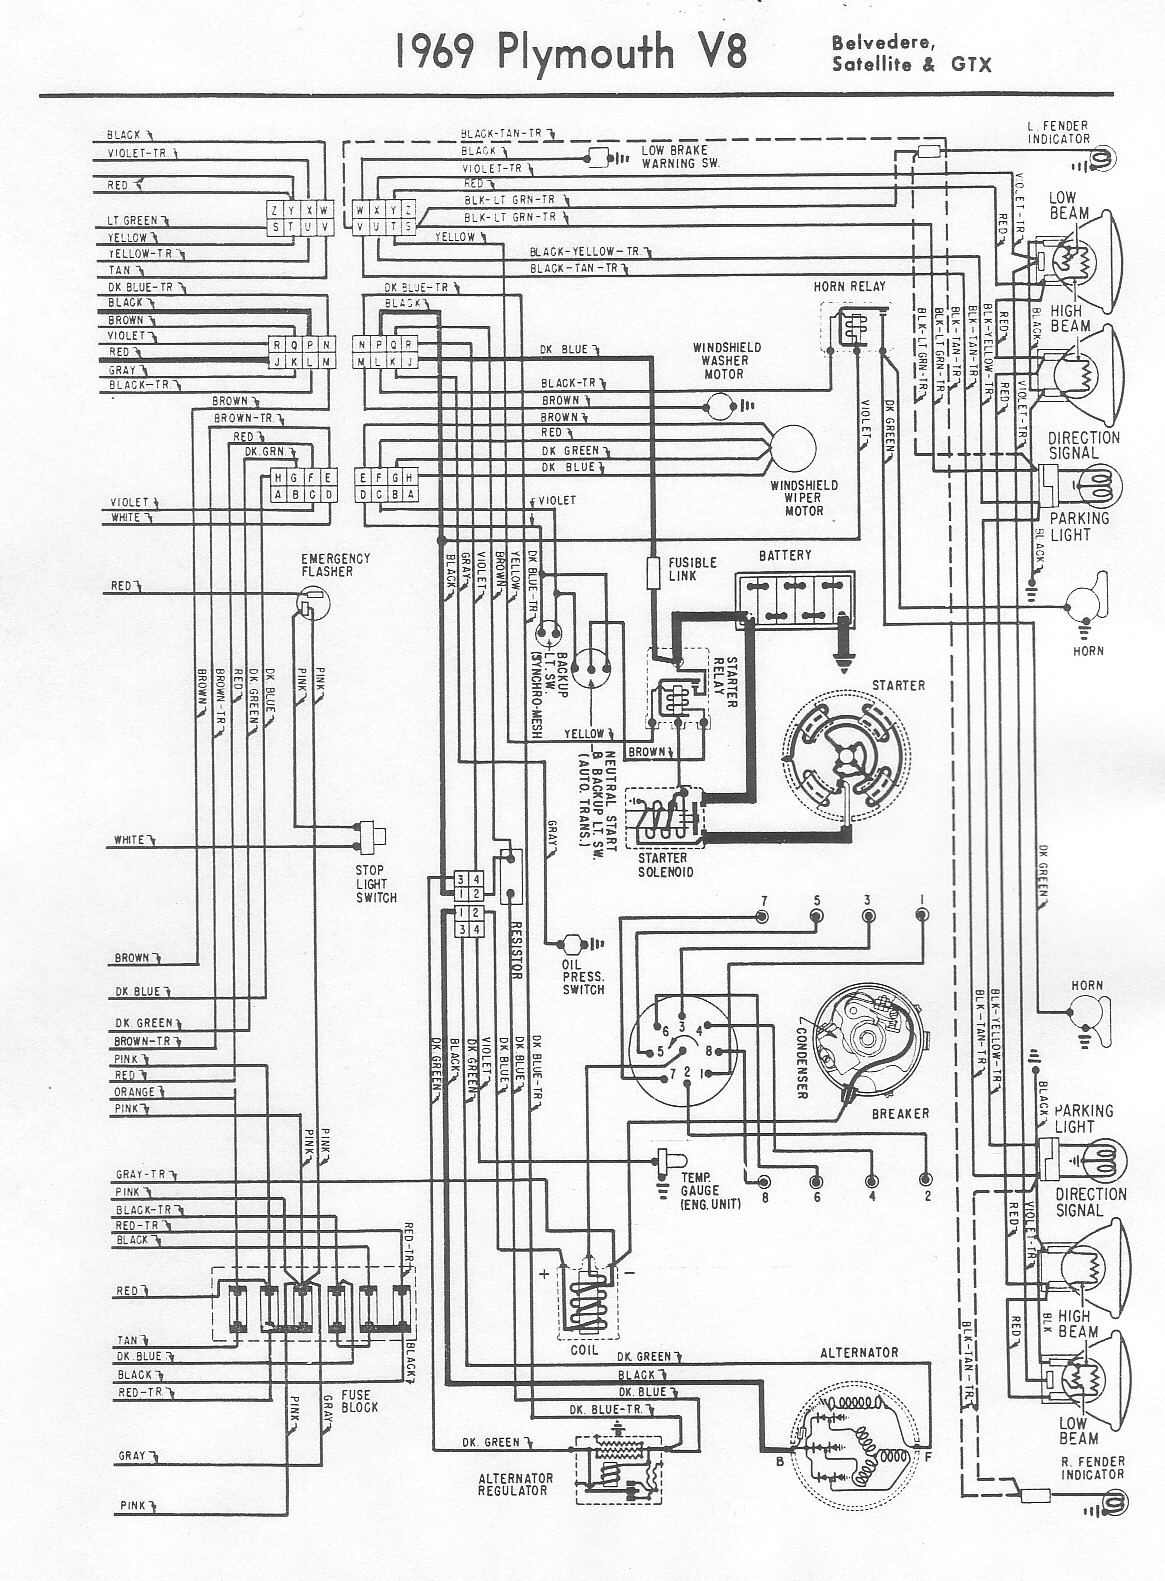 ignition wiring diagram 1968 plymouth satellite